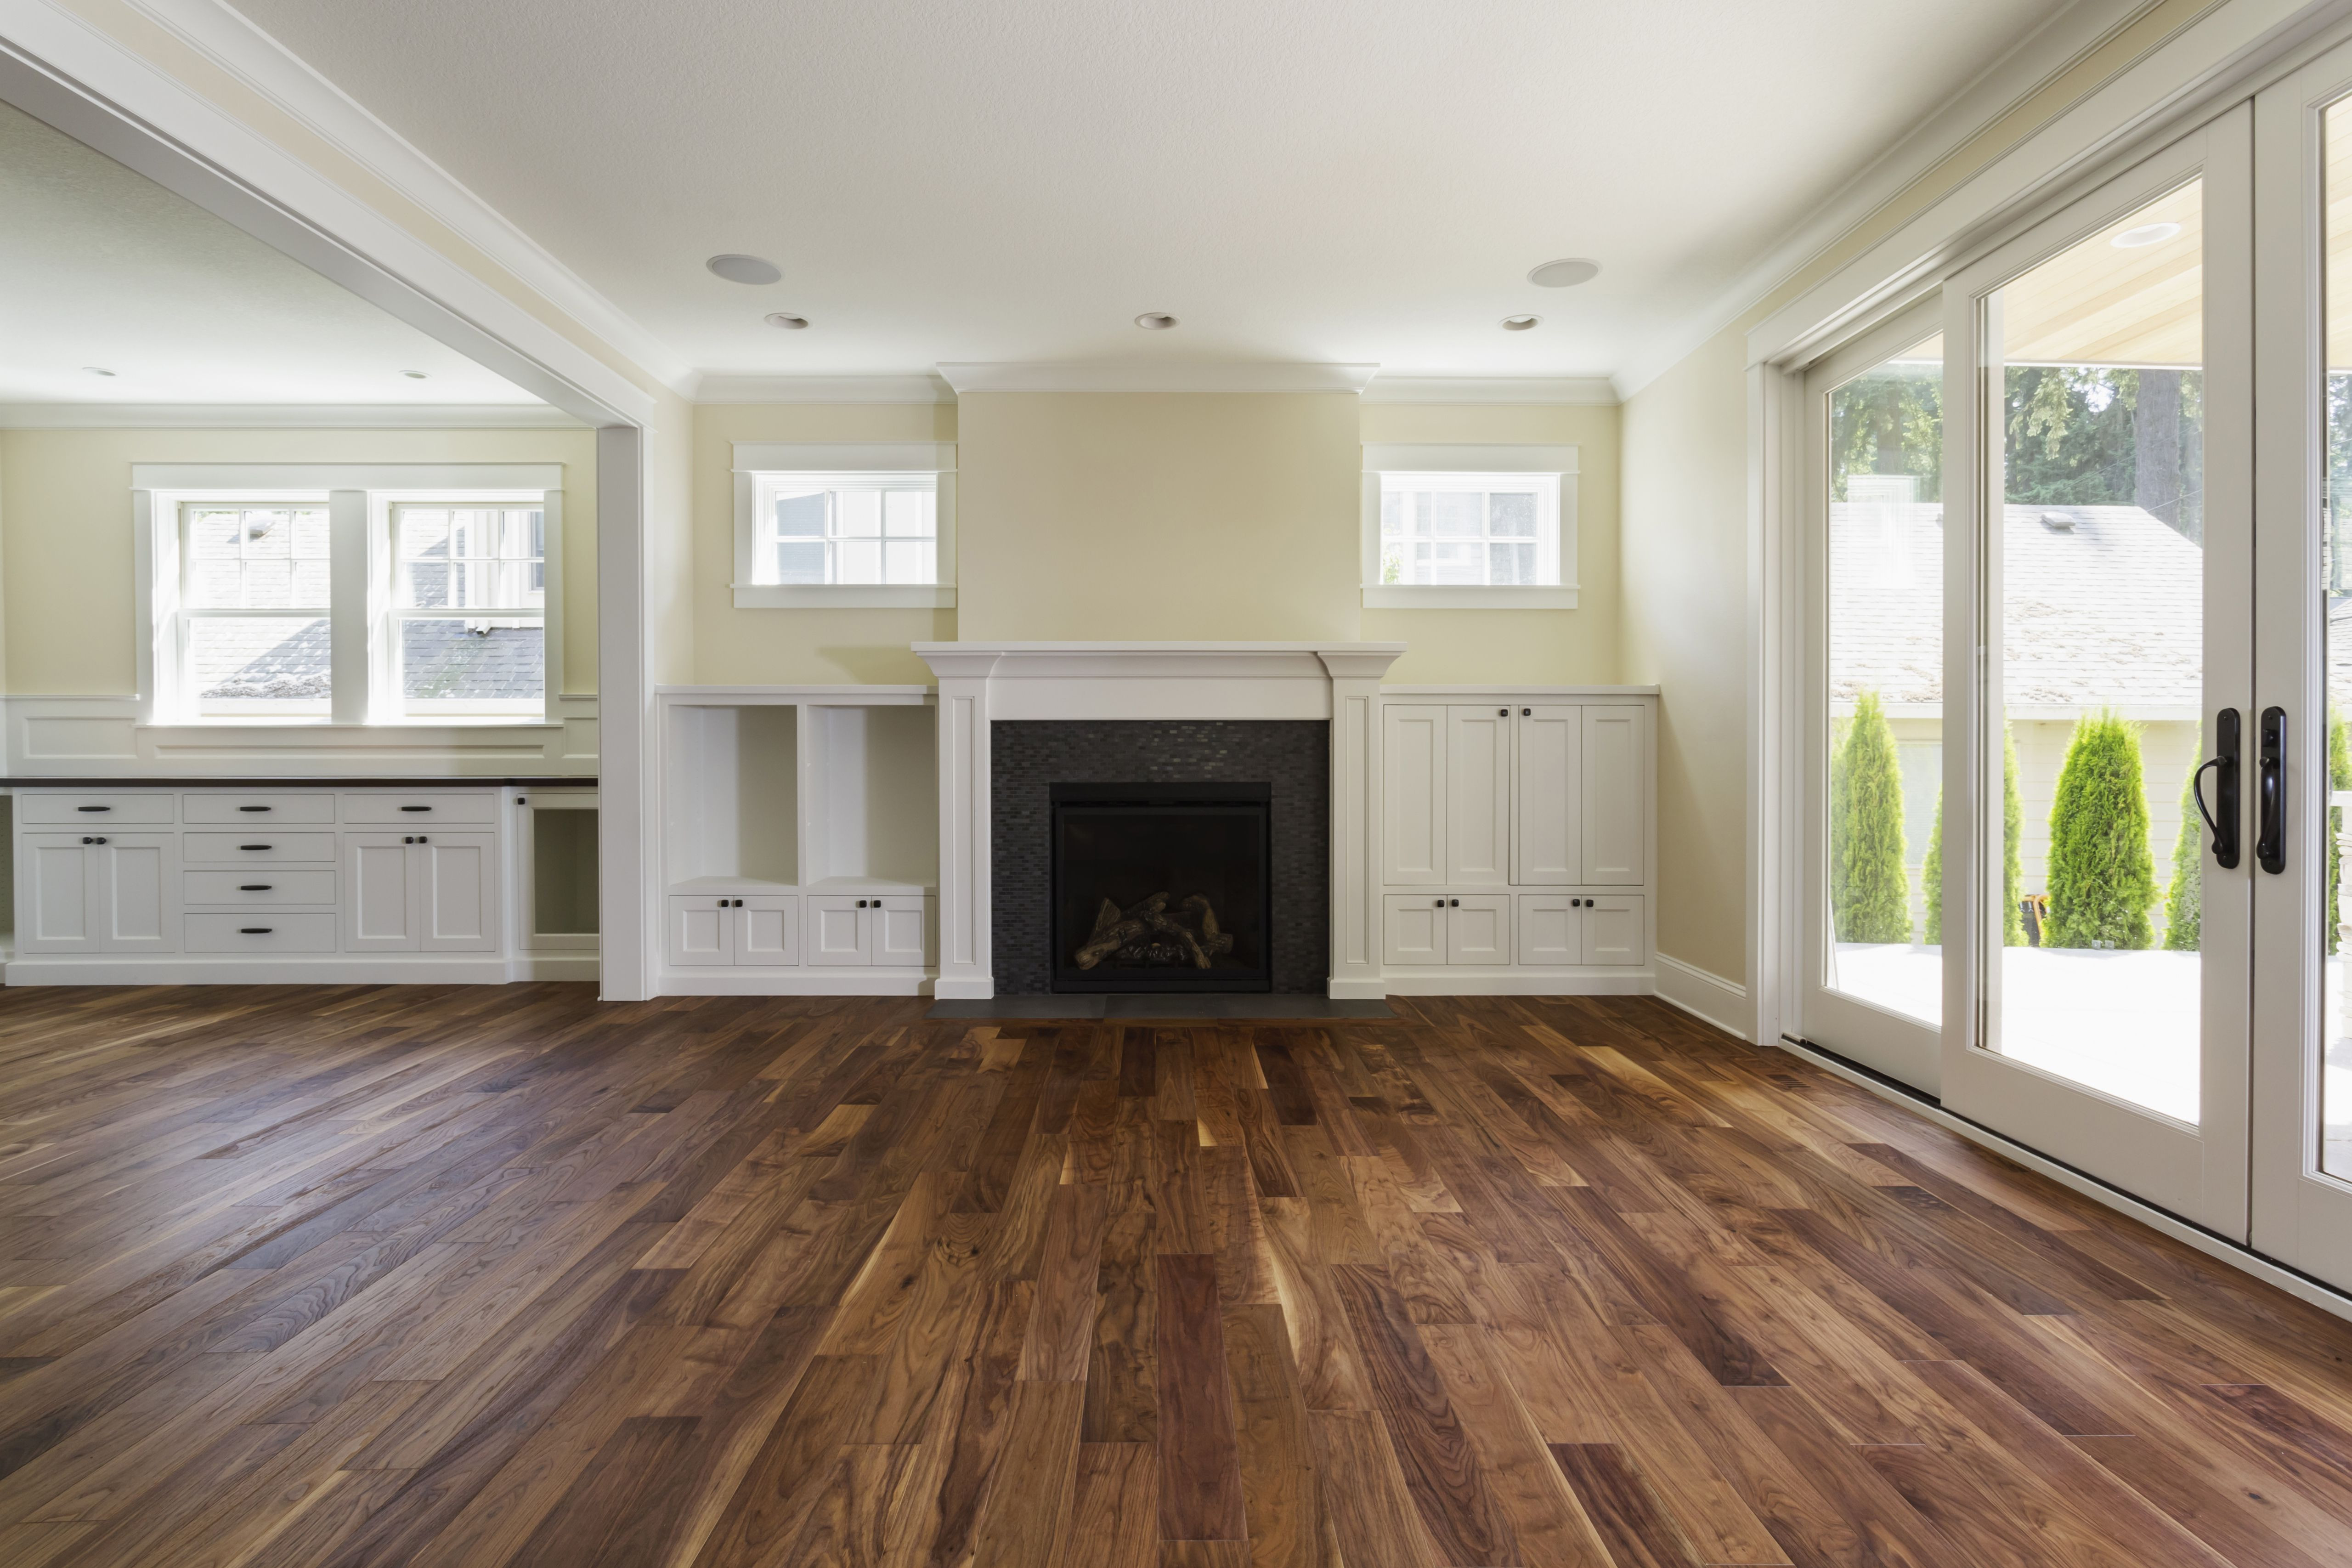 grey hardwood floors in living room of the pros and cons of prefinished hardwood flooring inside fireplace and built in shelves in living room 482143011 57bef8e33df78cc16e035397